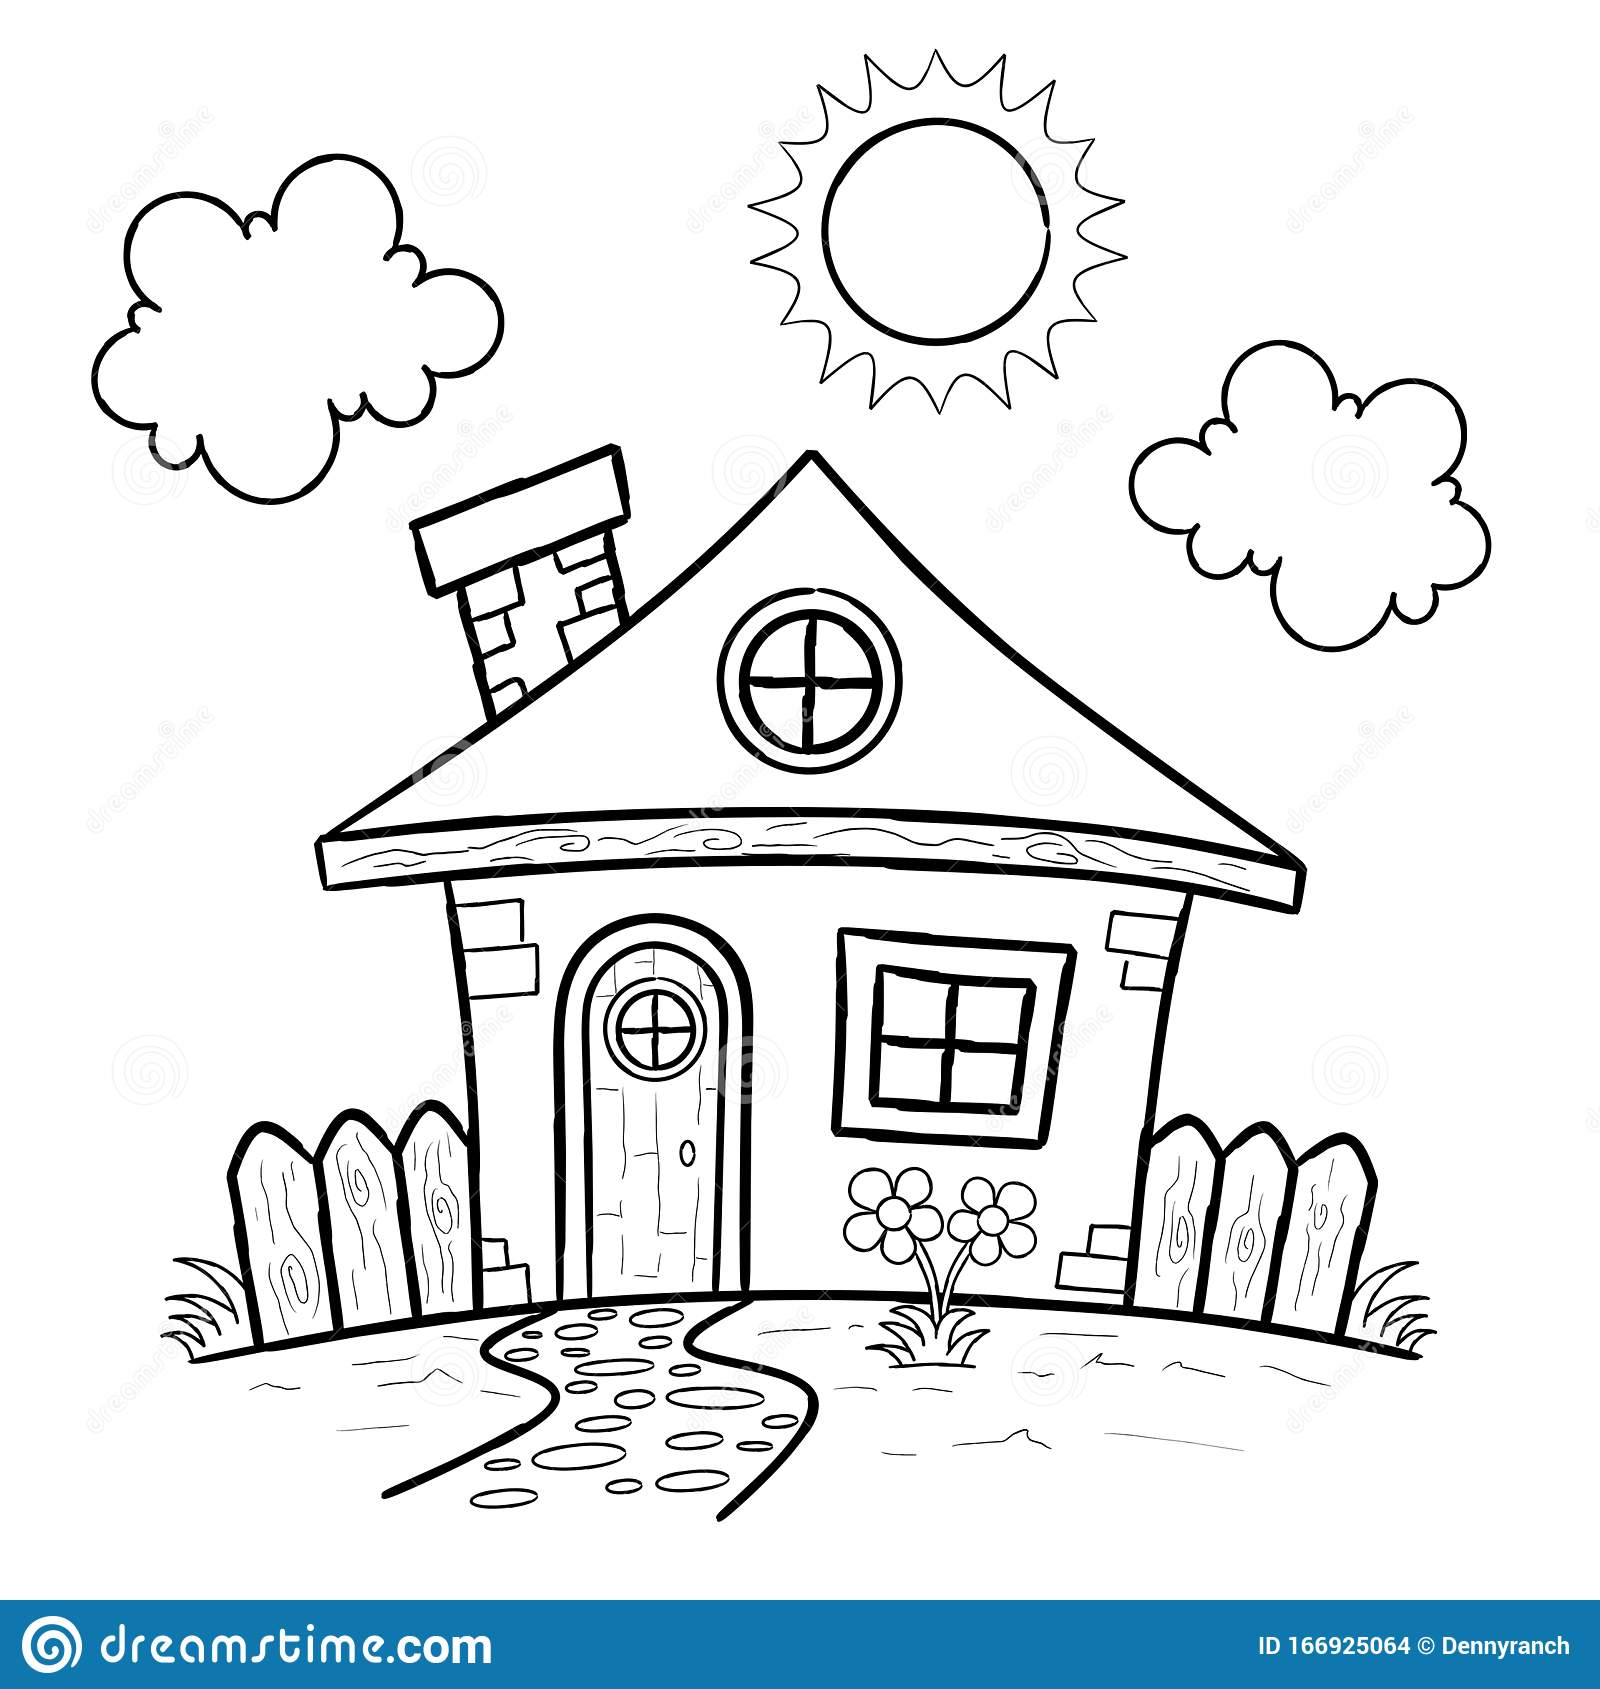 59 Best Birdhouse Coloring Pages for Kids - Updated 2018 ...   1689x1600